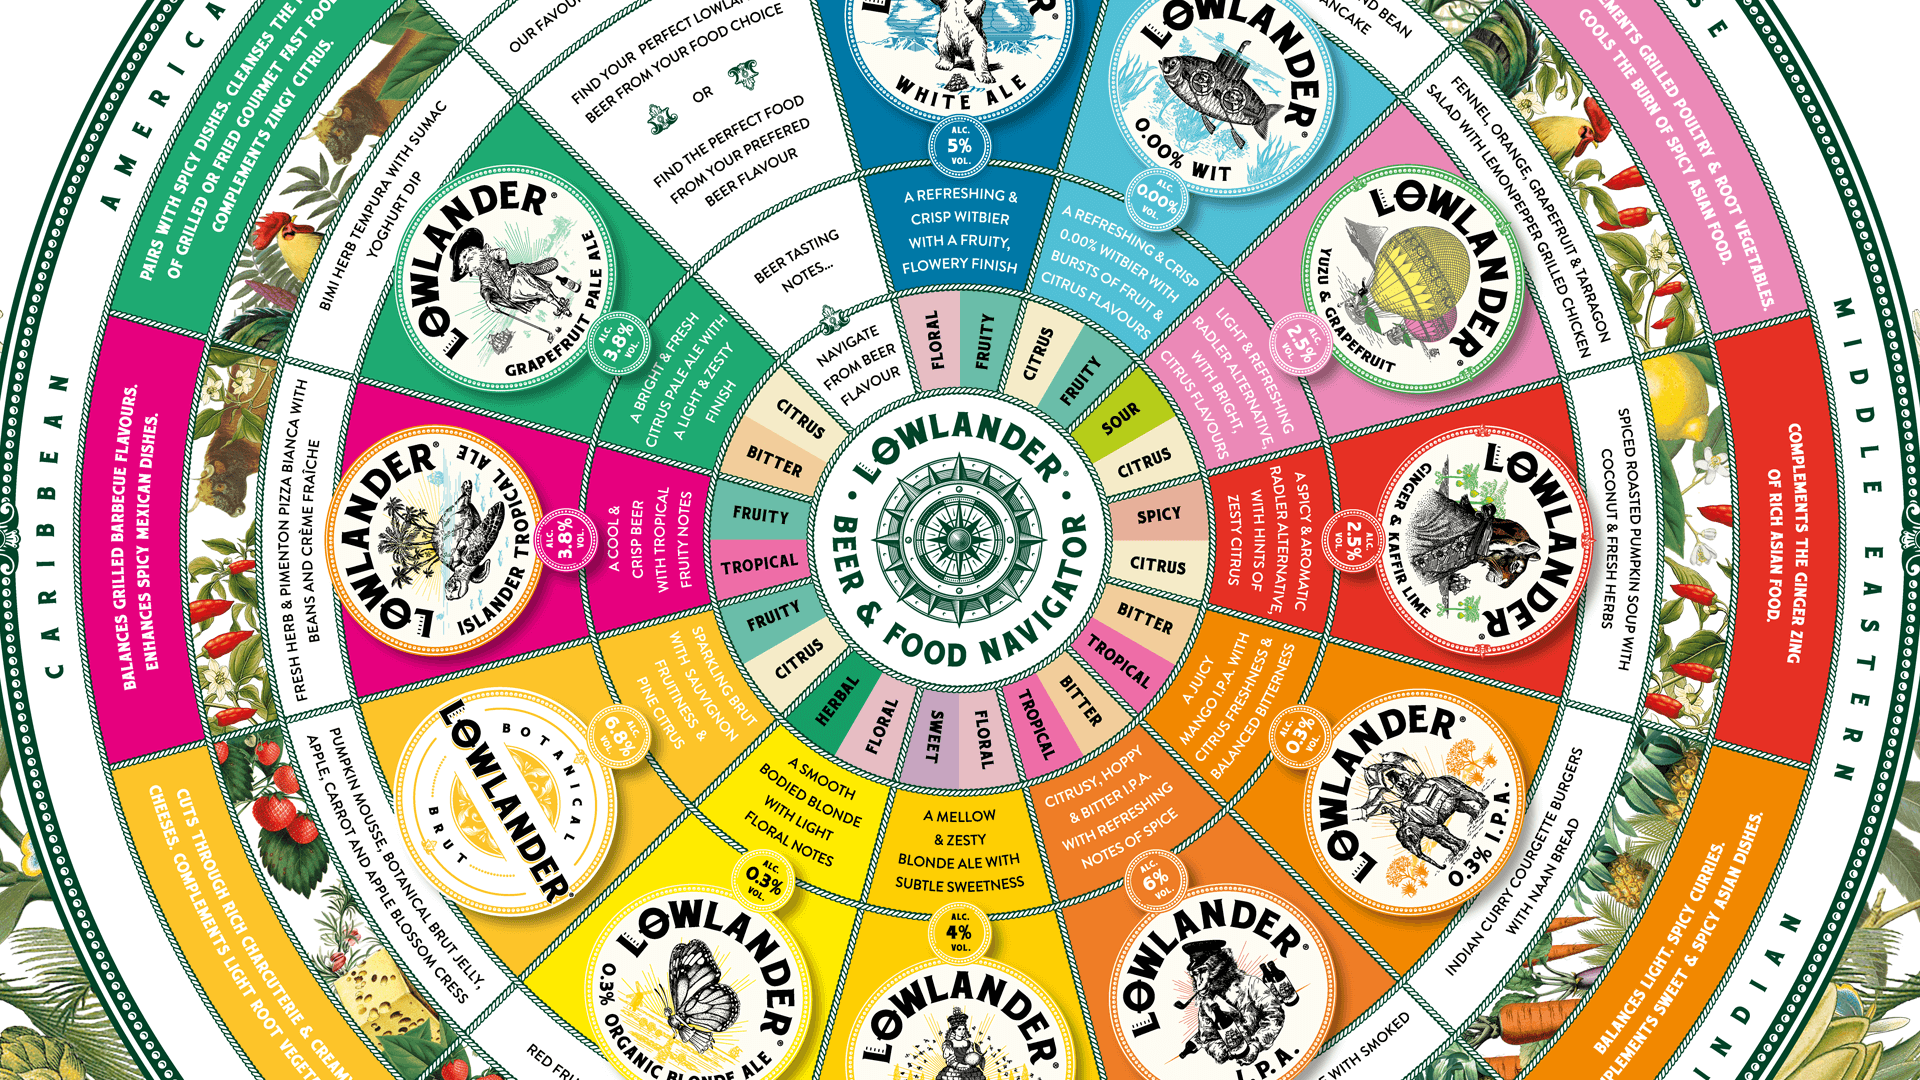 Lowlander Botanical Beer, beautiful intricate info graphic designed and illustrated by Mutiny Agency for Lowlander Beers food pairing. Mutiny Agency created the beer & food navigator which allows consumers to find their perfect dish based on the beer they like or discover the beer they should try with the food they want to order/cook. But the design challenge went further so consumers can start at any point, country of food, recipe, food type, beer flavour profiles or tasting notes. Clear effective design by Mutiny Agency allows consumers to explore the all the possibilities of botanical beer.